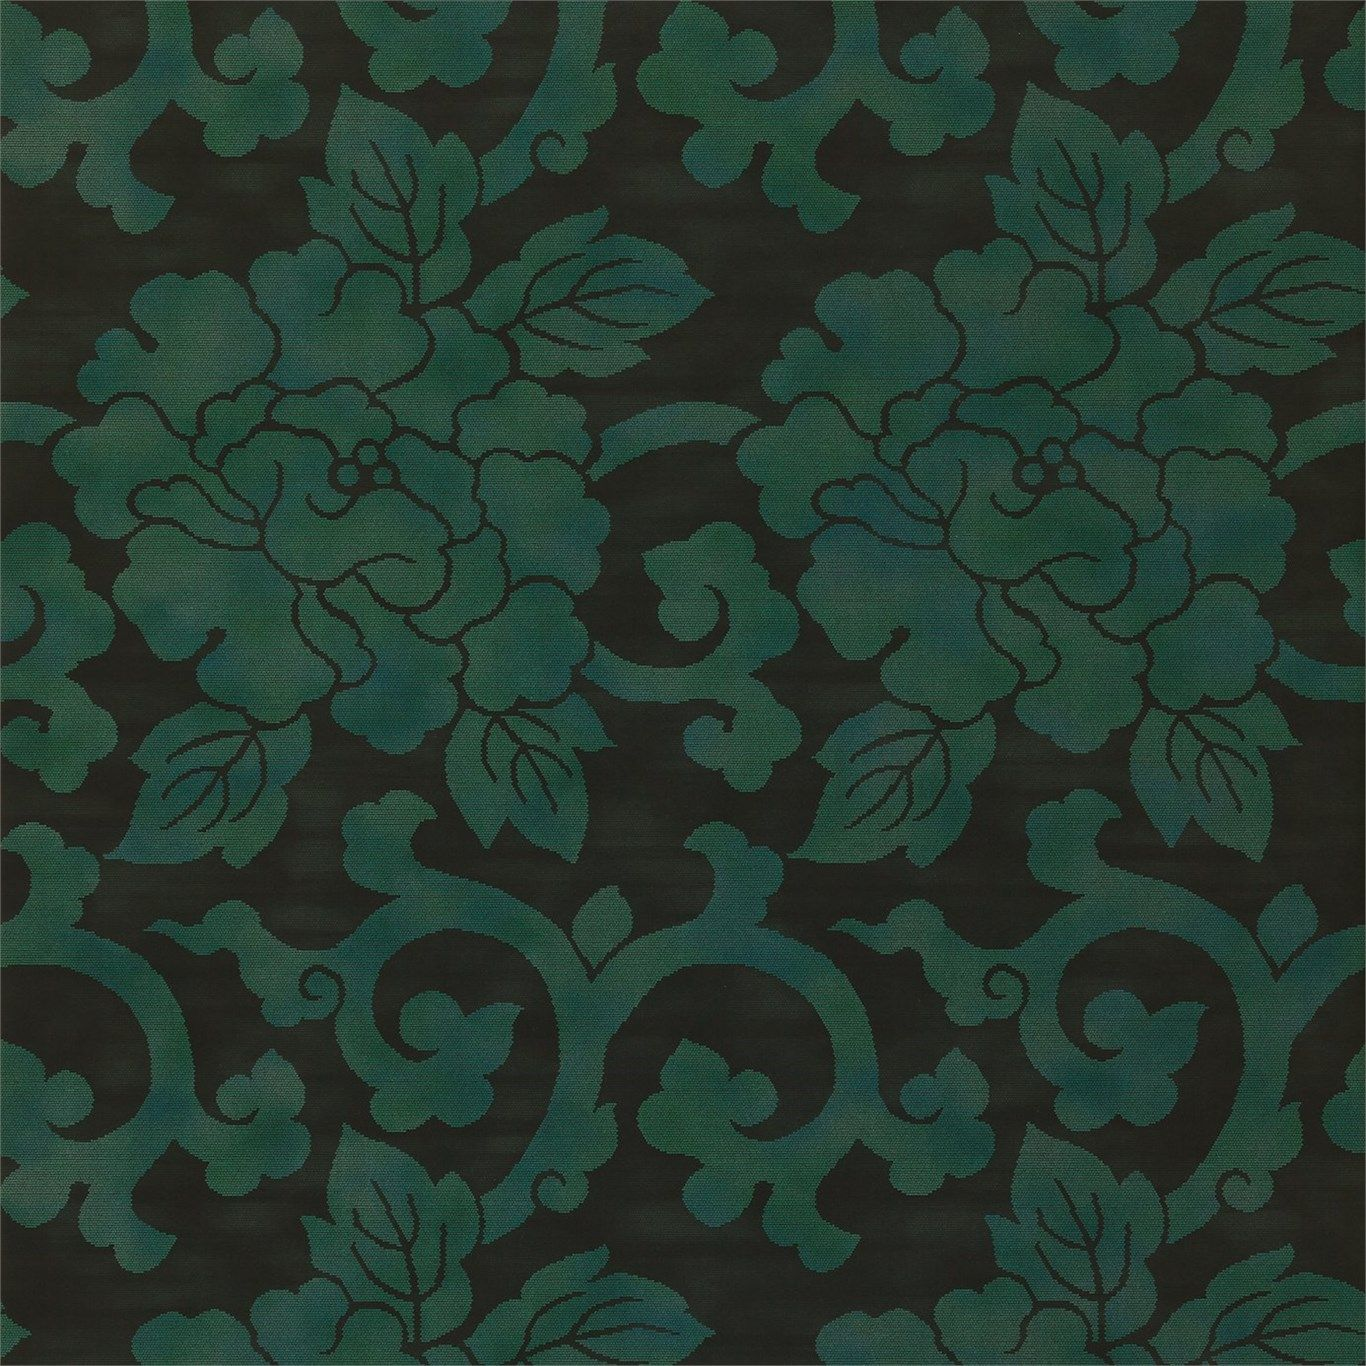 Mandarin Nup08001 Emerald (wallpaper)